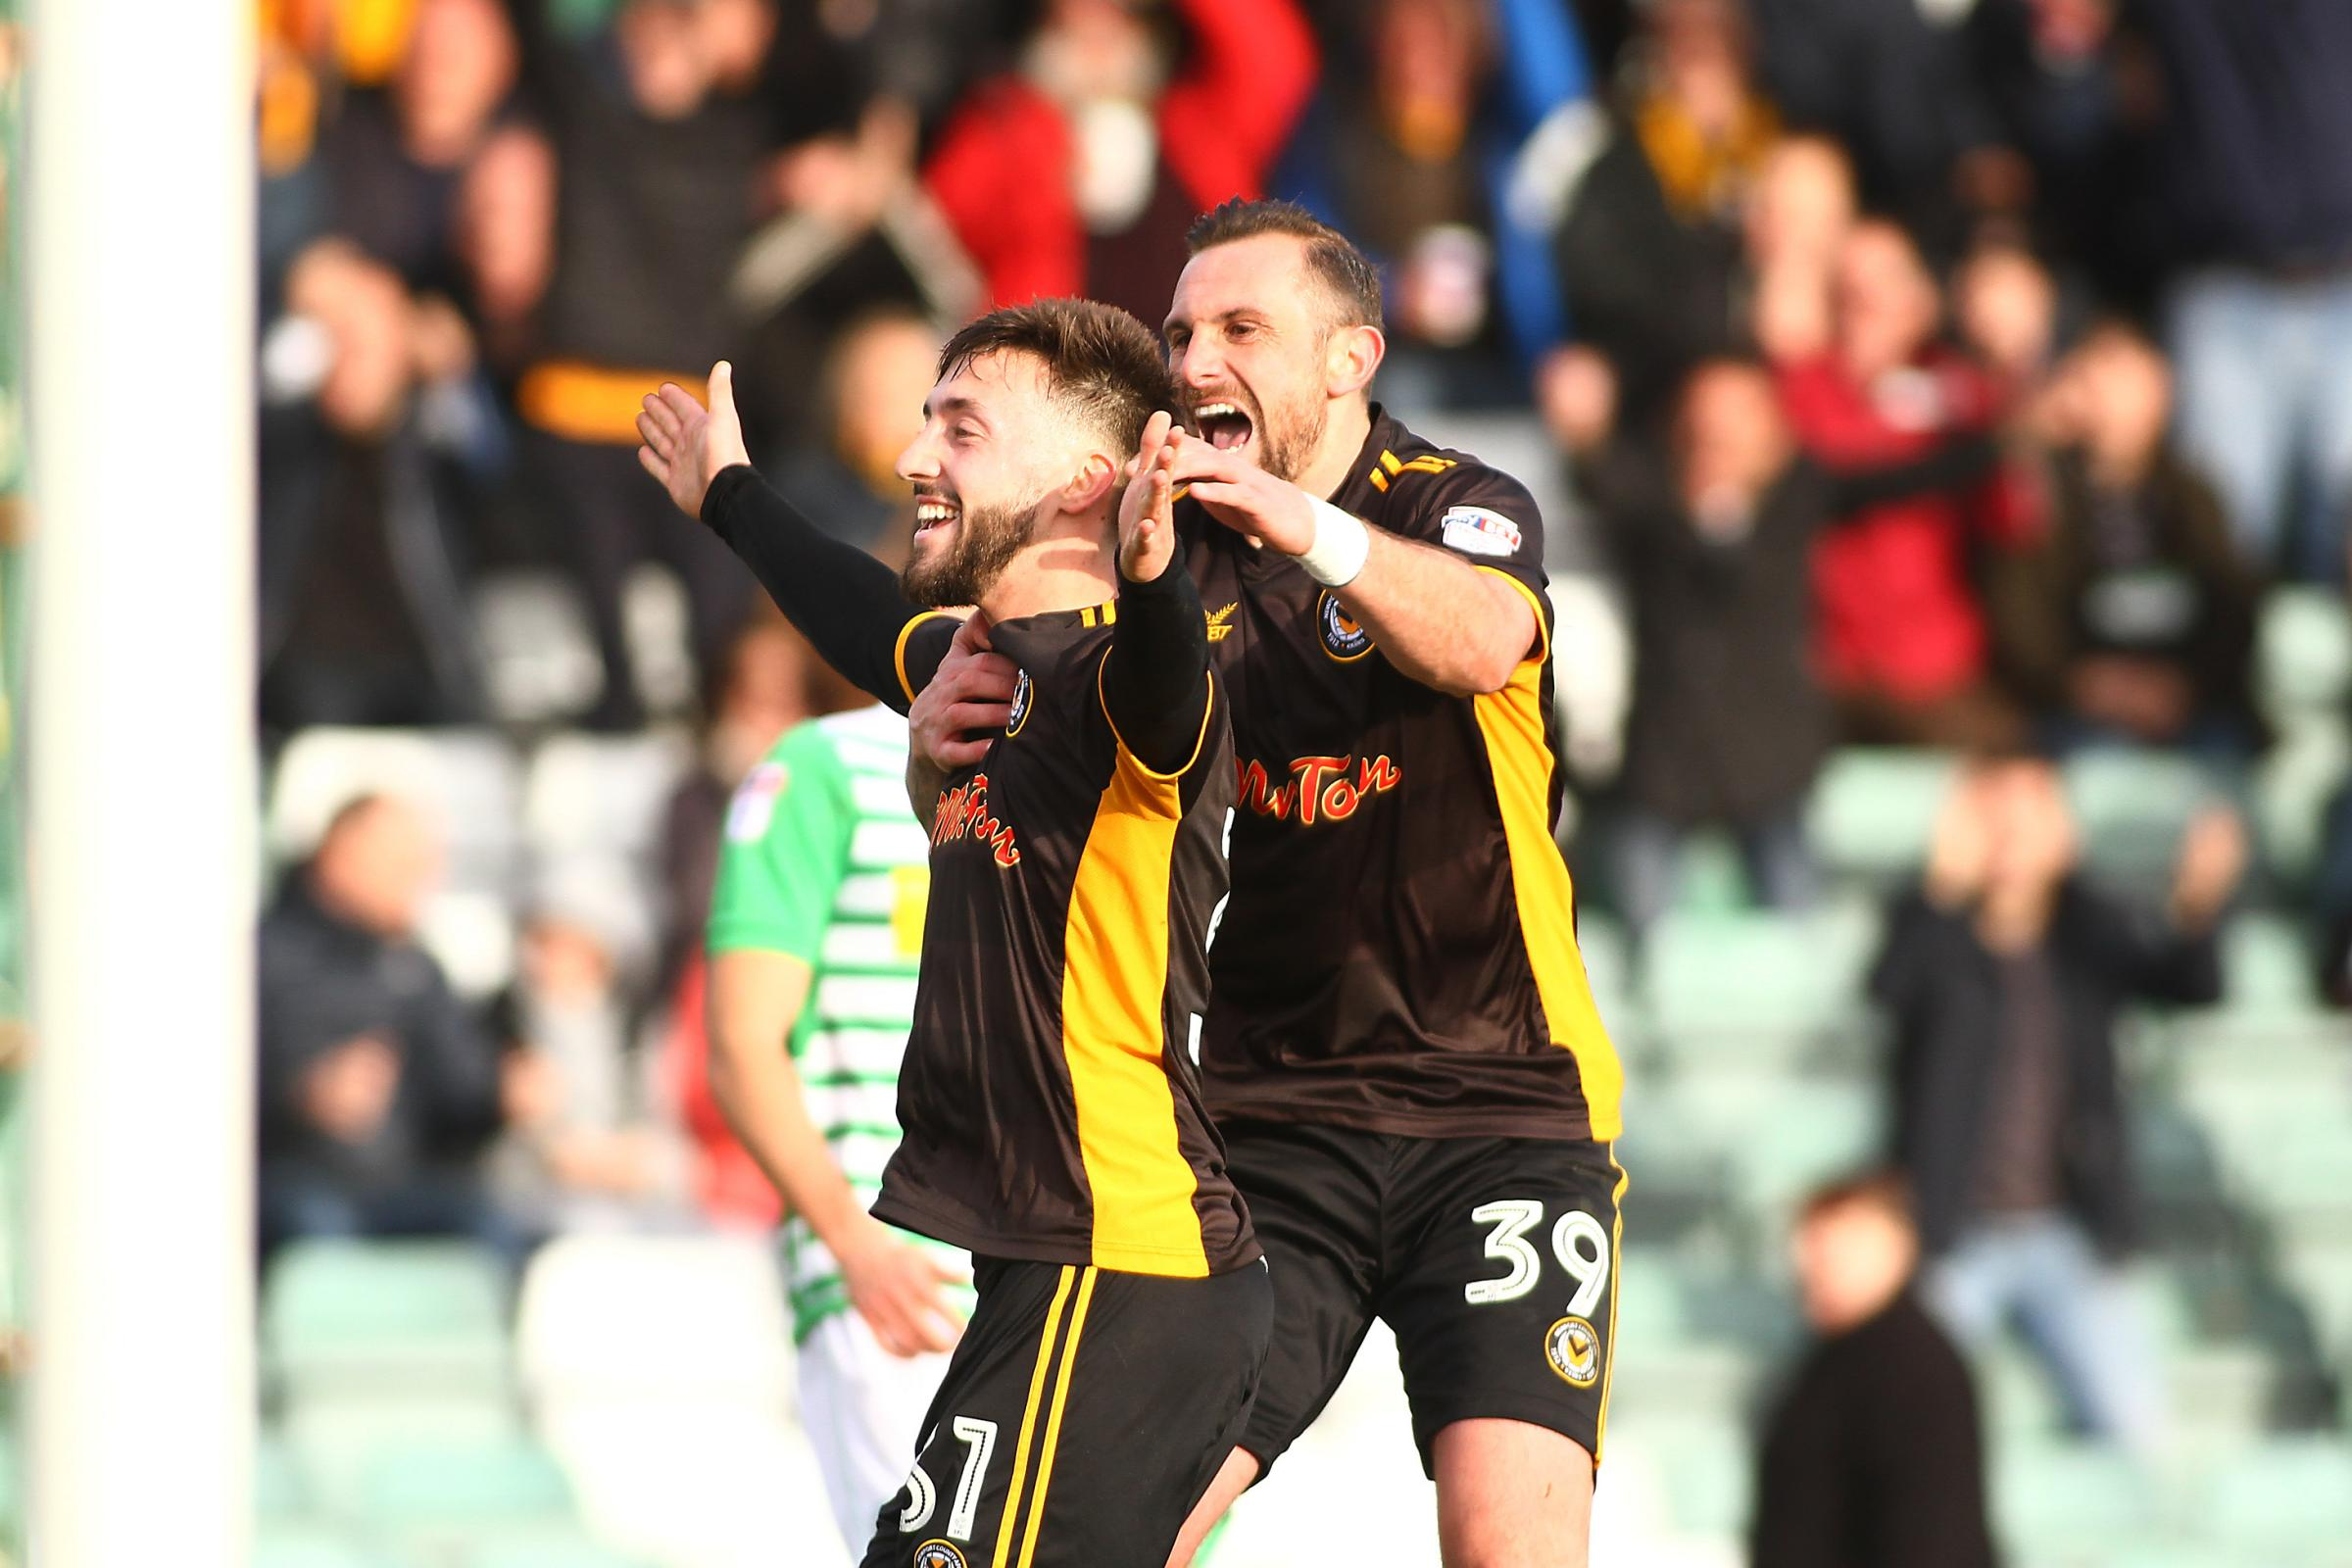 GOAL: Josh Sheehan celebrates his goal at Yeovil Town with Newport County teammate Paul Hayes. Picture: Huw Evans Agency